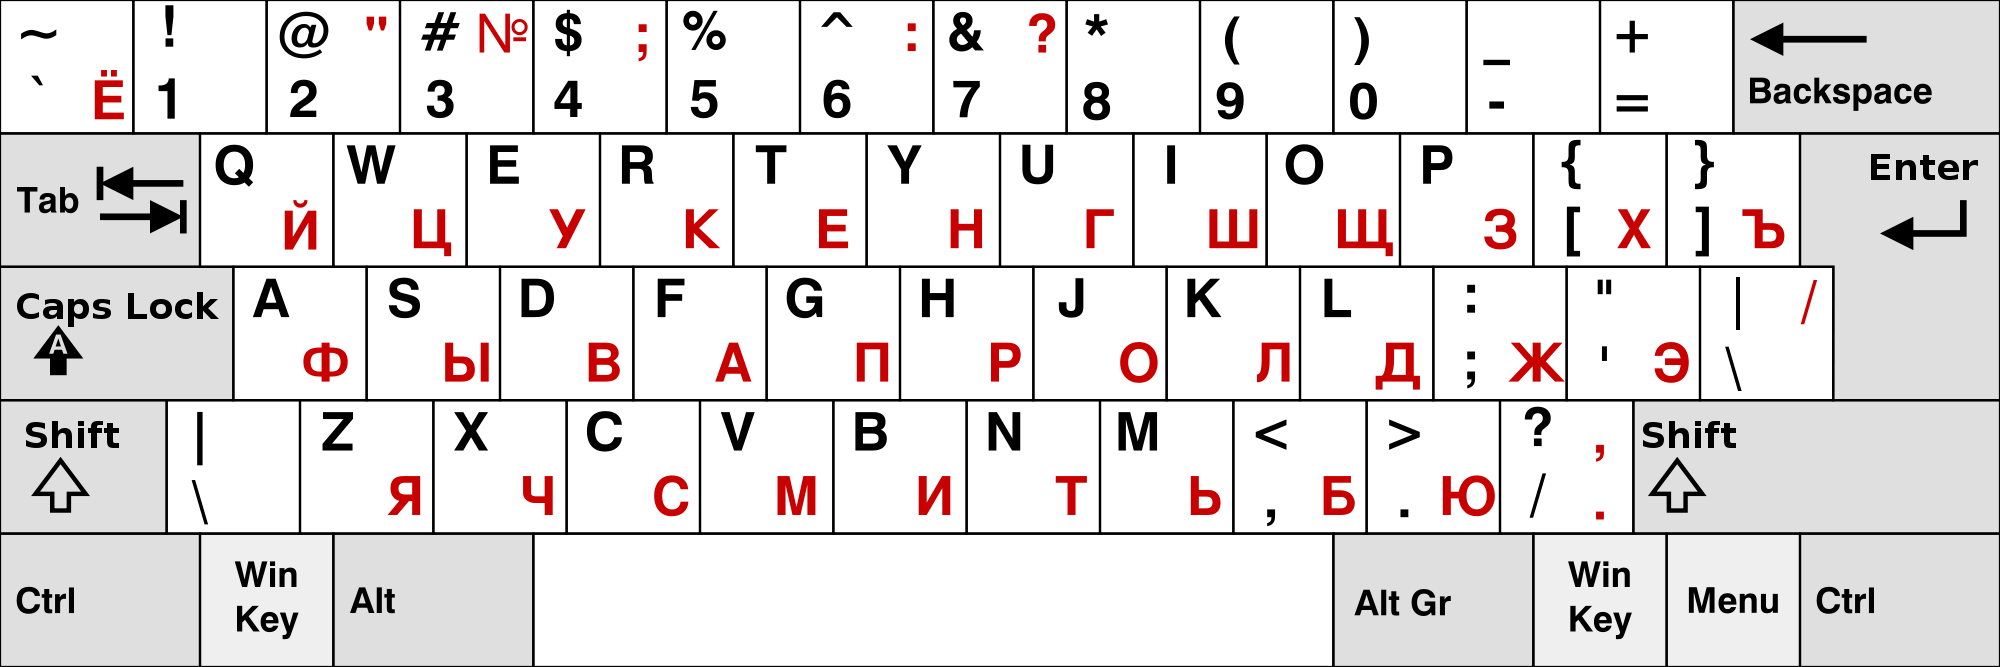 3e331a29631 How to install Russian keyboard on your computer or phone - Russian ...